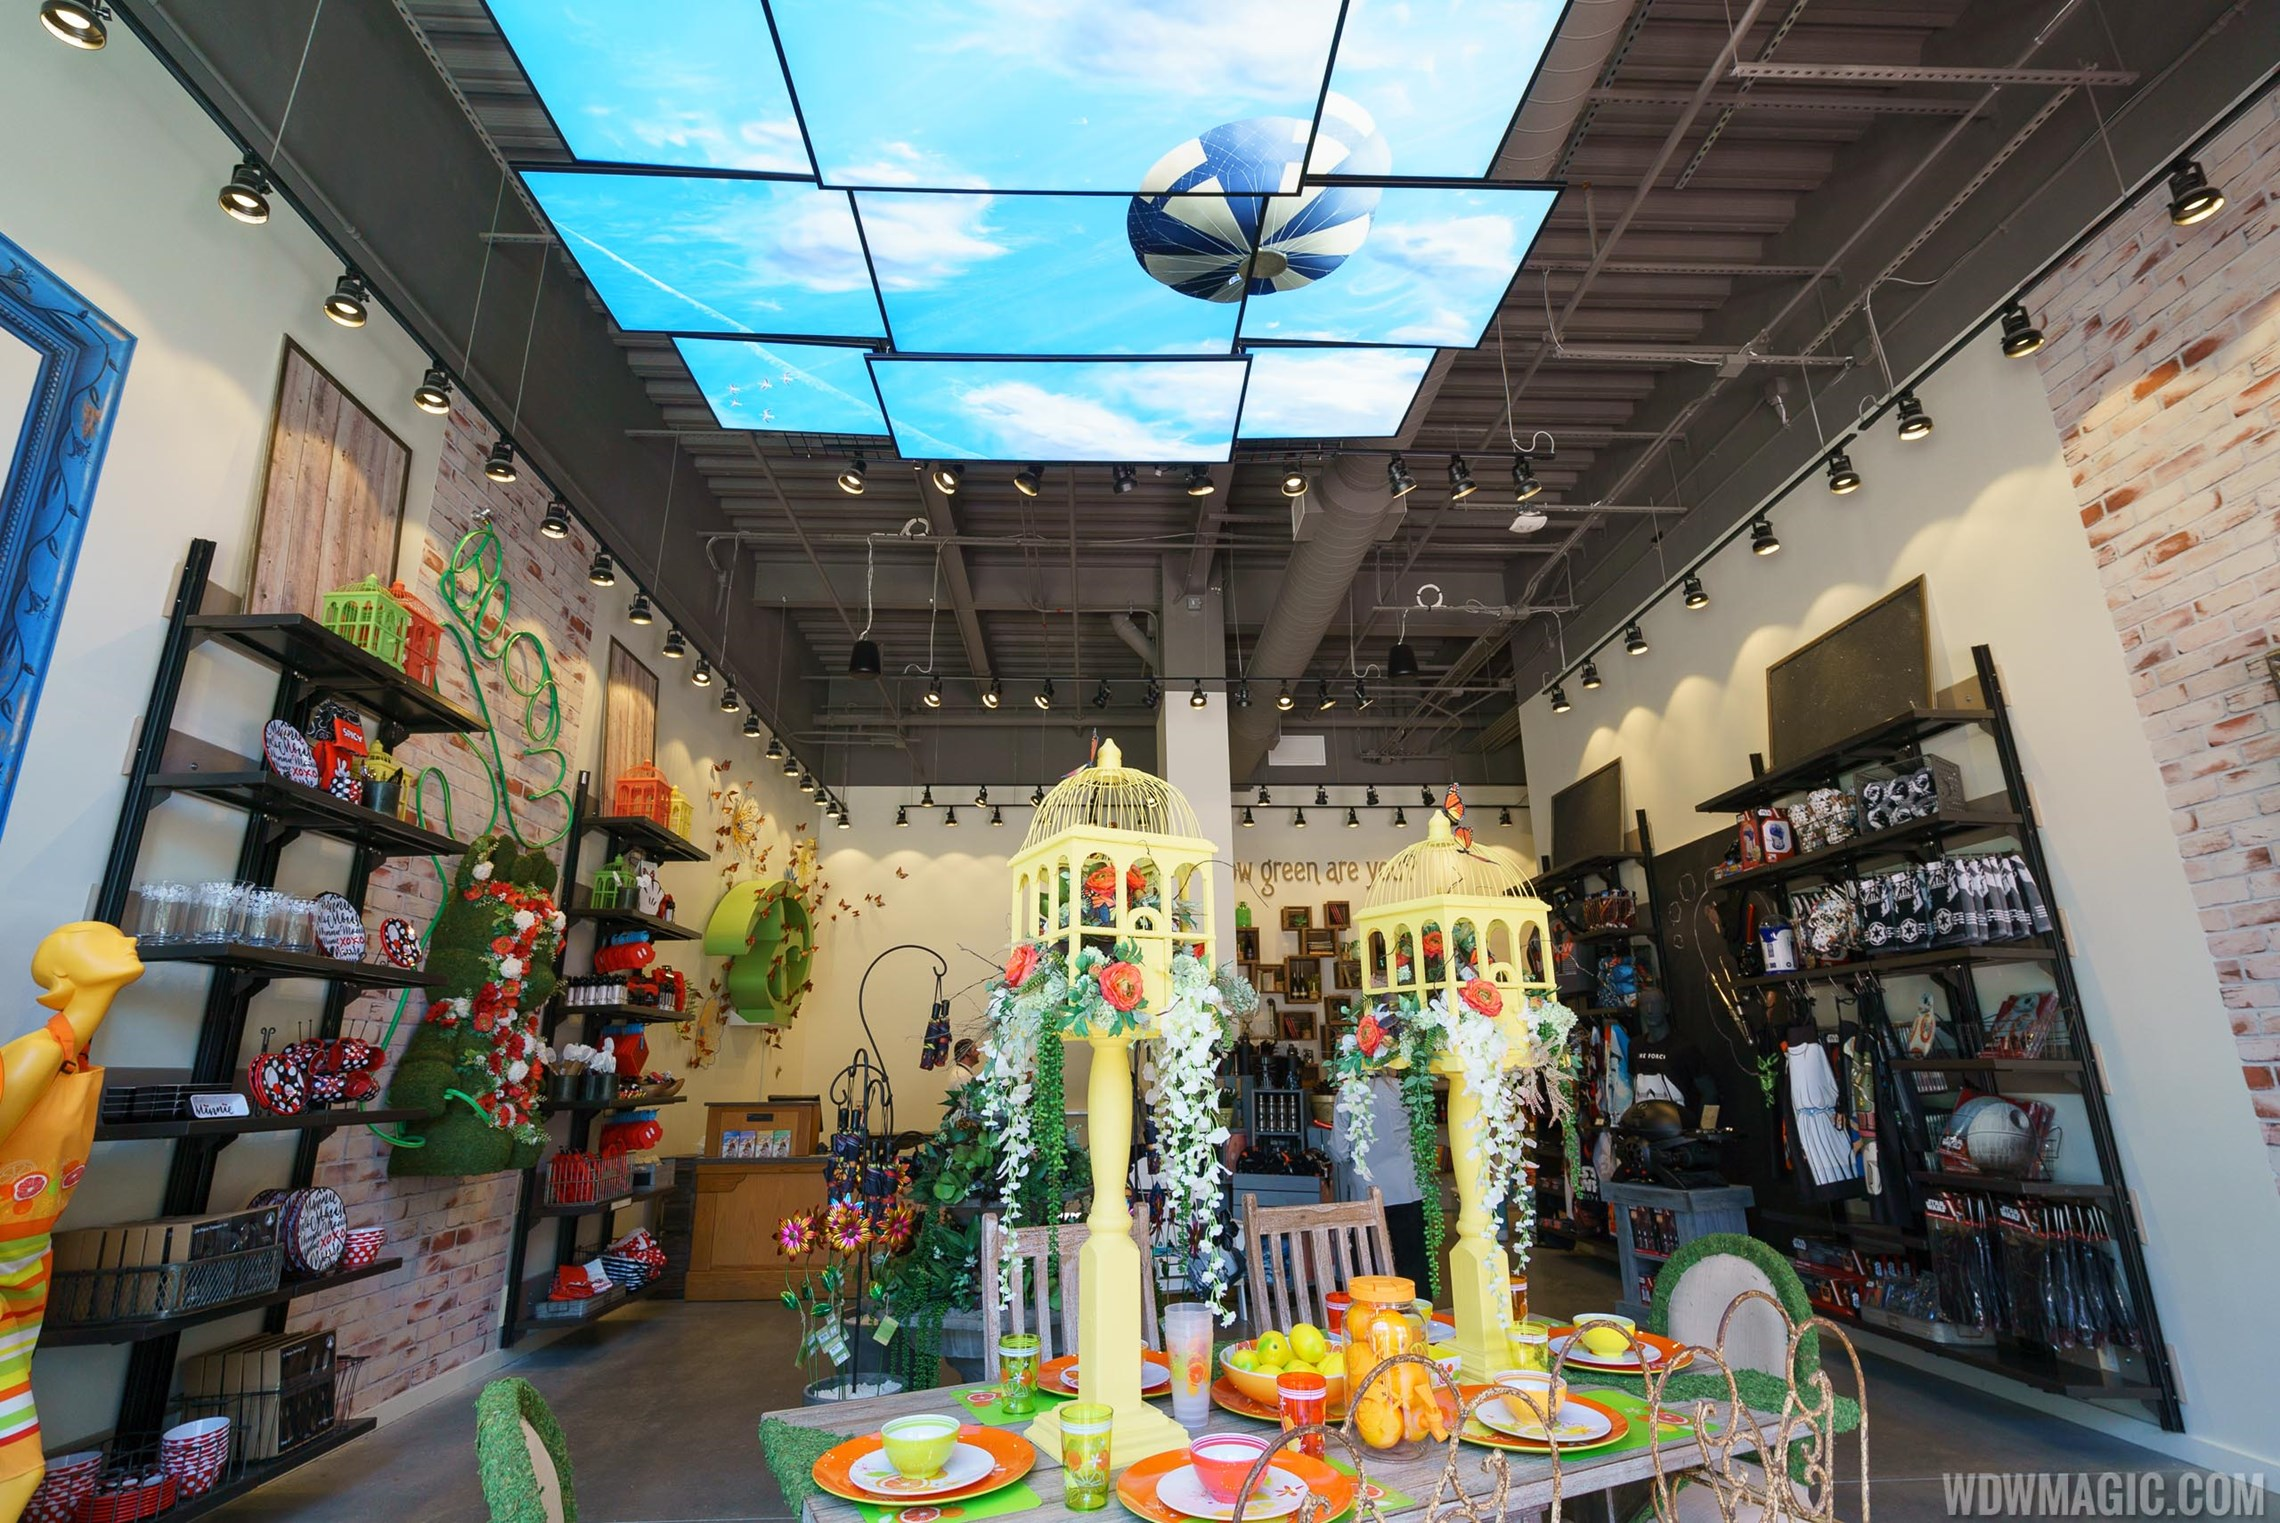 PHOTOS - D-Living reopens with new summer outdoors theme